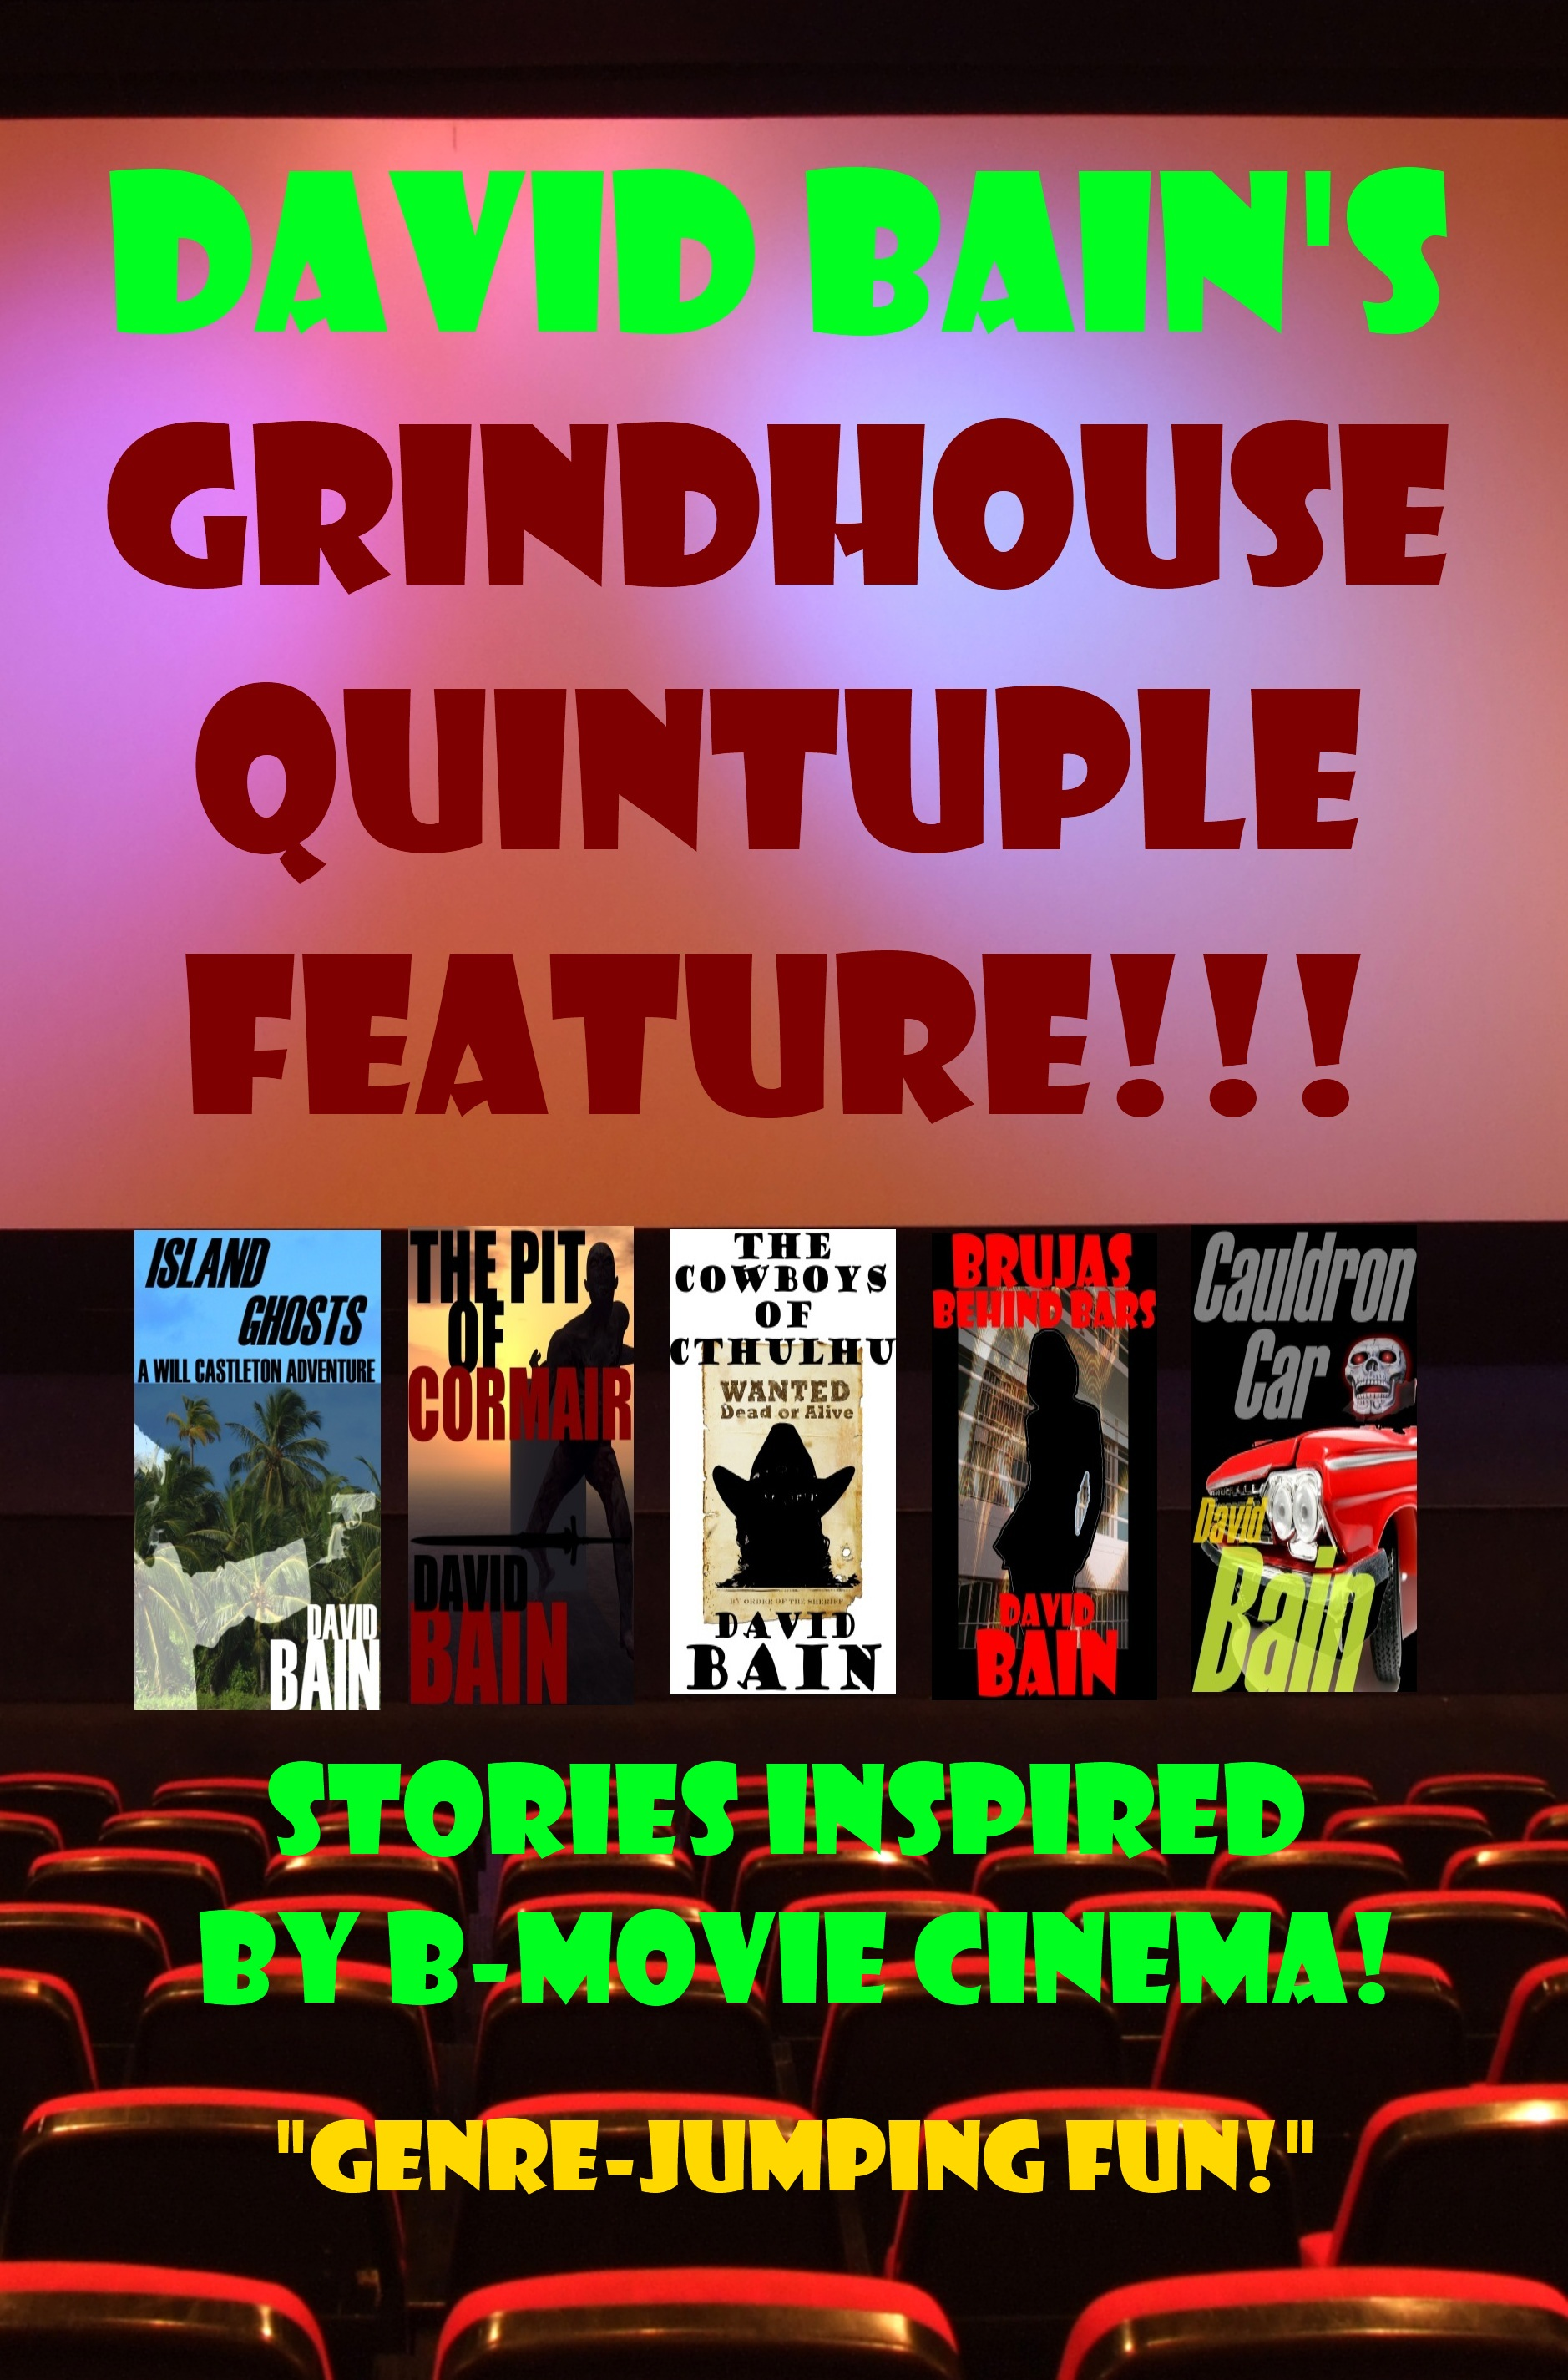 David Bain's Grindhouse Quintuple Feature!!!